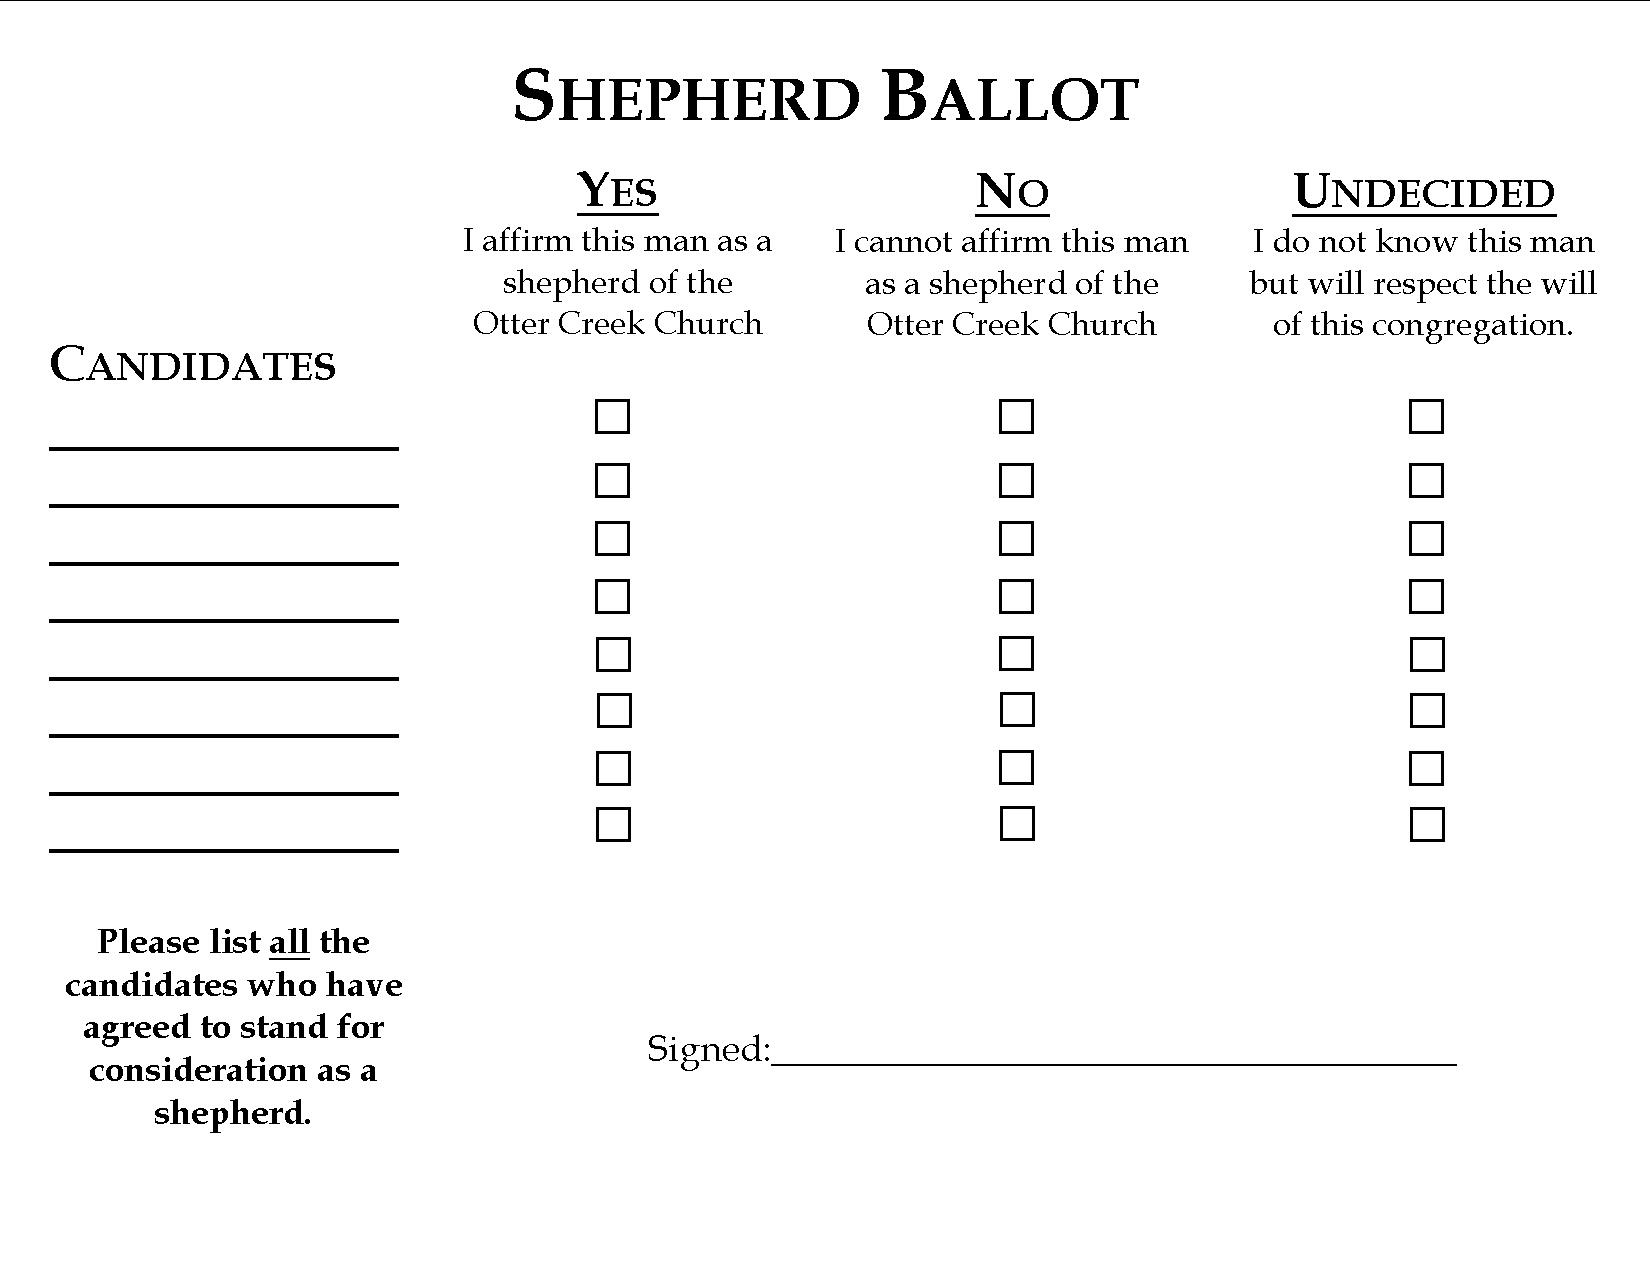 Congregational Ballot used for the affirmation or rejection of Elder candidates.